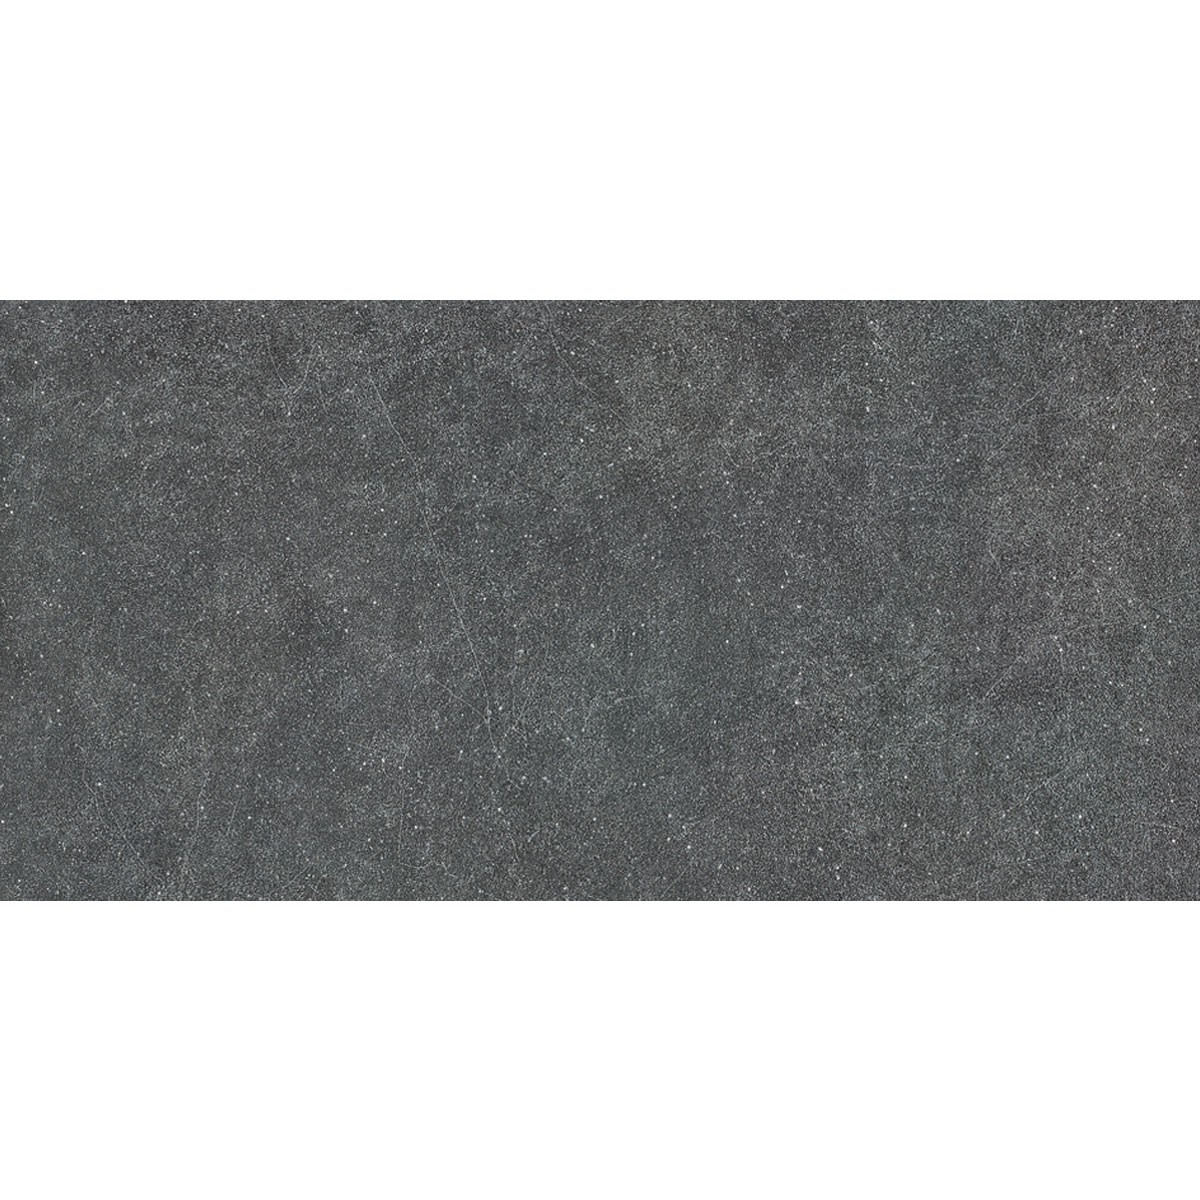 24 x 12 In. Black Porcelain Floor Tile - 8 Pcs/Case (15.50 sq.ft/Case) (BS60E)